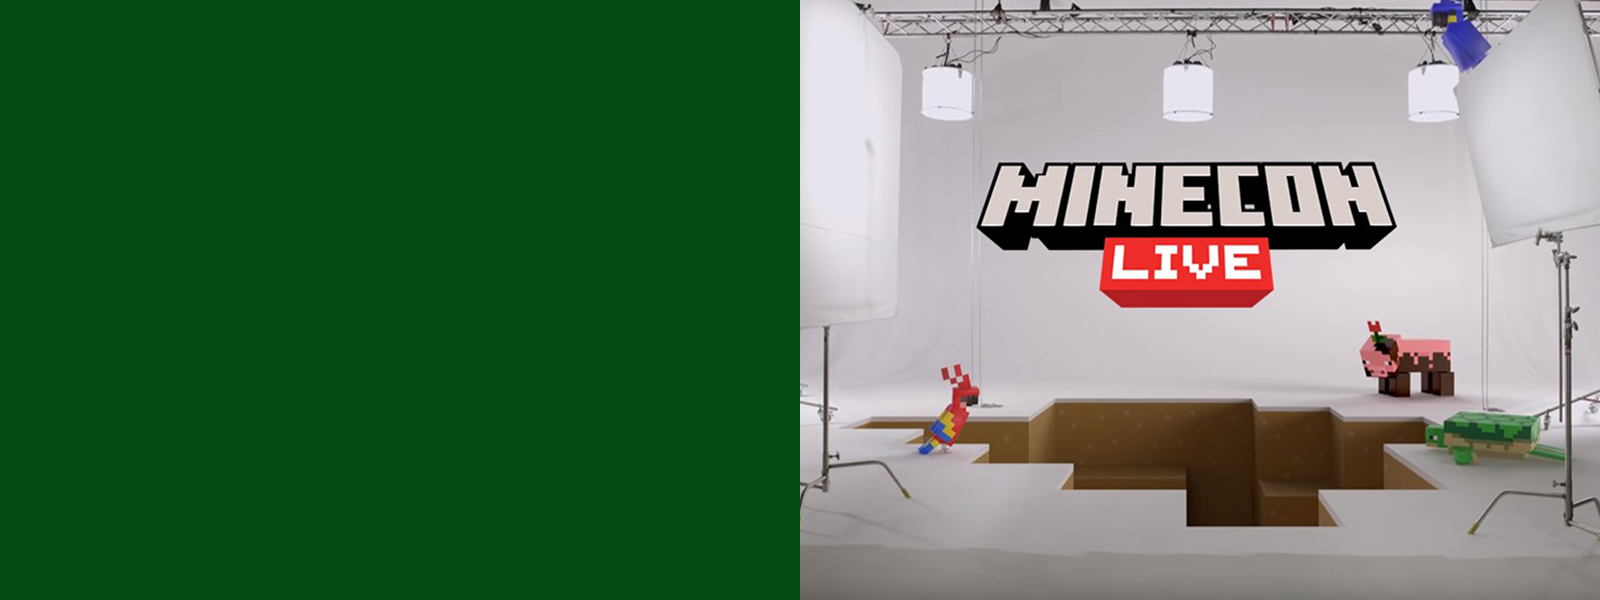 MINECON Live logo with Minecraft characters.